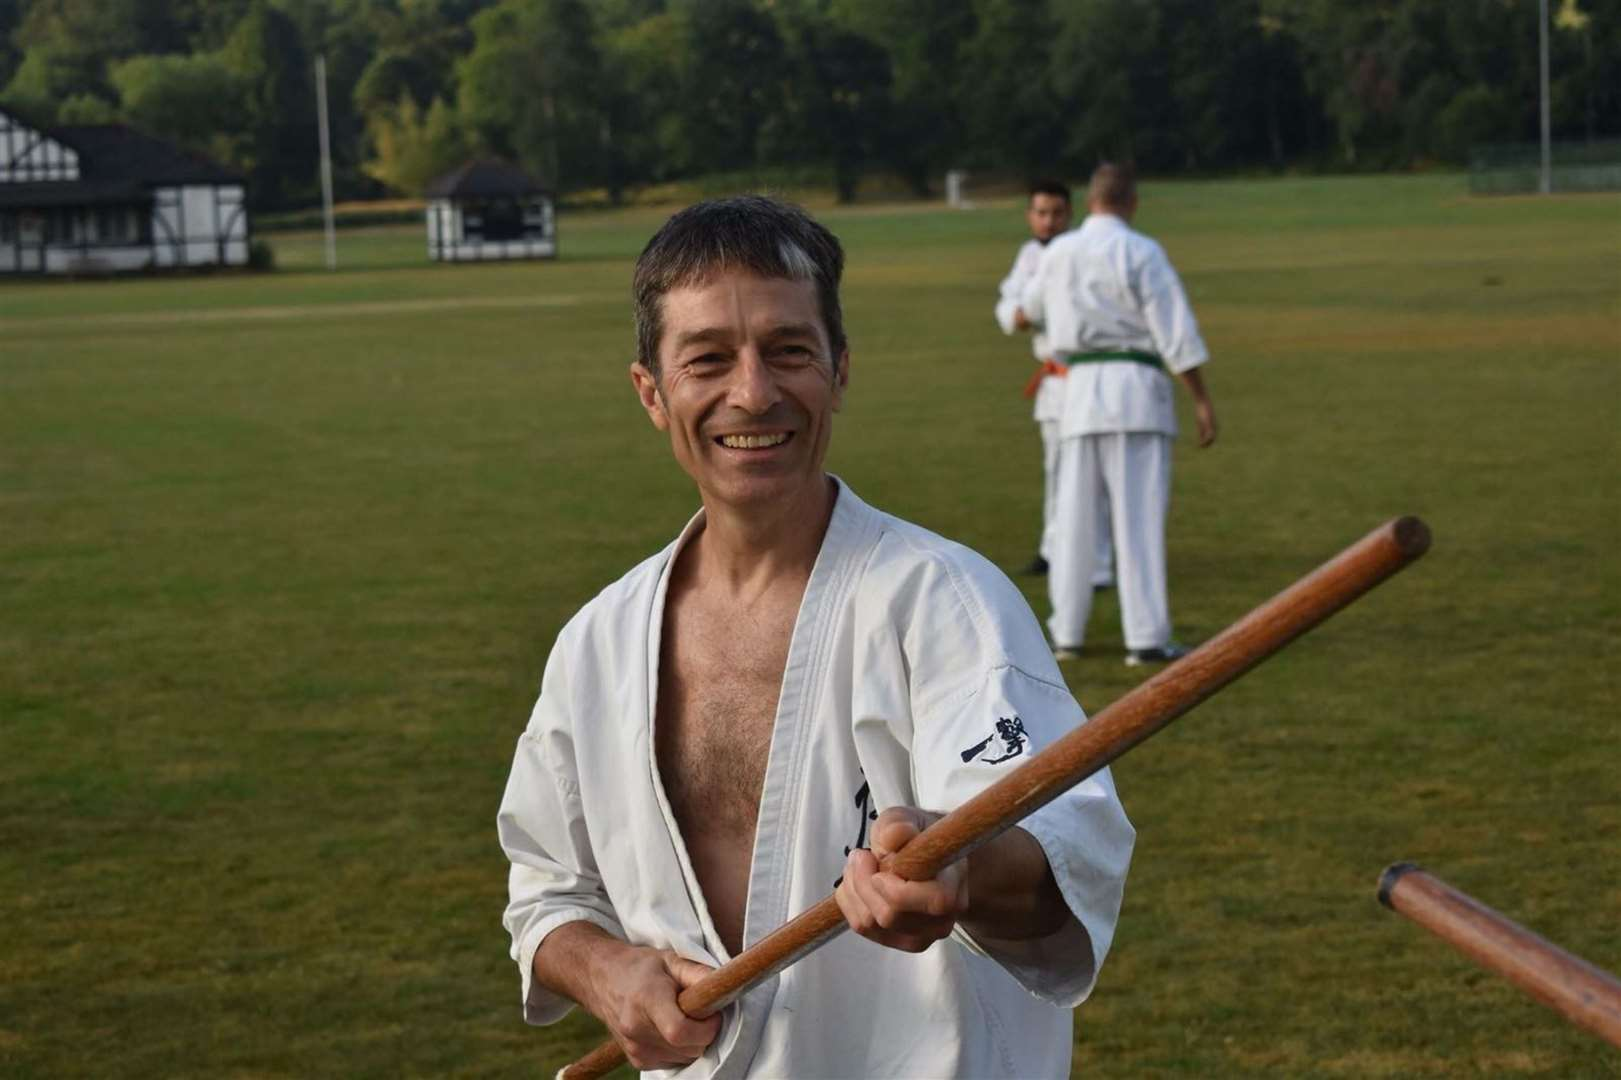 Mark Kingsland is an instructor, or sensei, at Bishop's Stortford Kyokushin Karate